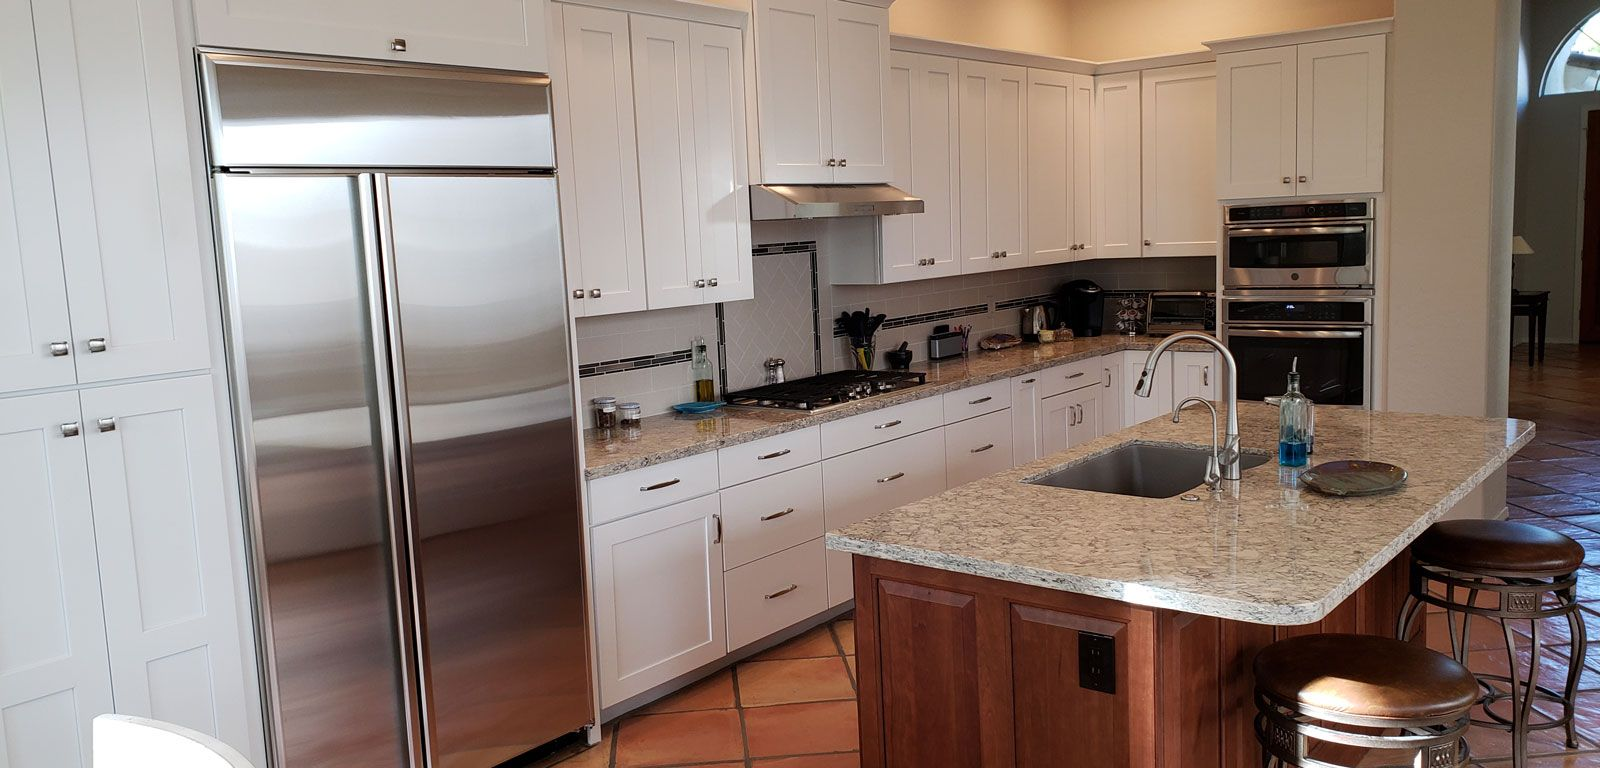 Kitchen Remodeling In Peoria And Phoenix Az Kitchen Remodeling Contractors Kitchen And Bath Remodeling Bathrooms Remodel